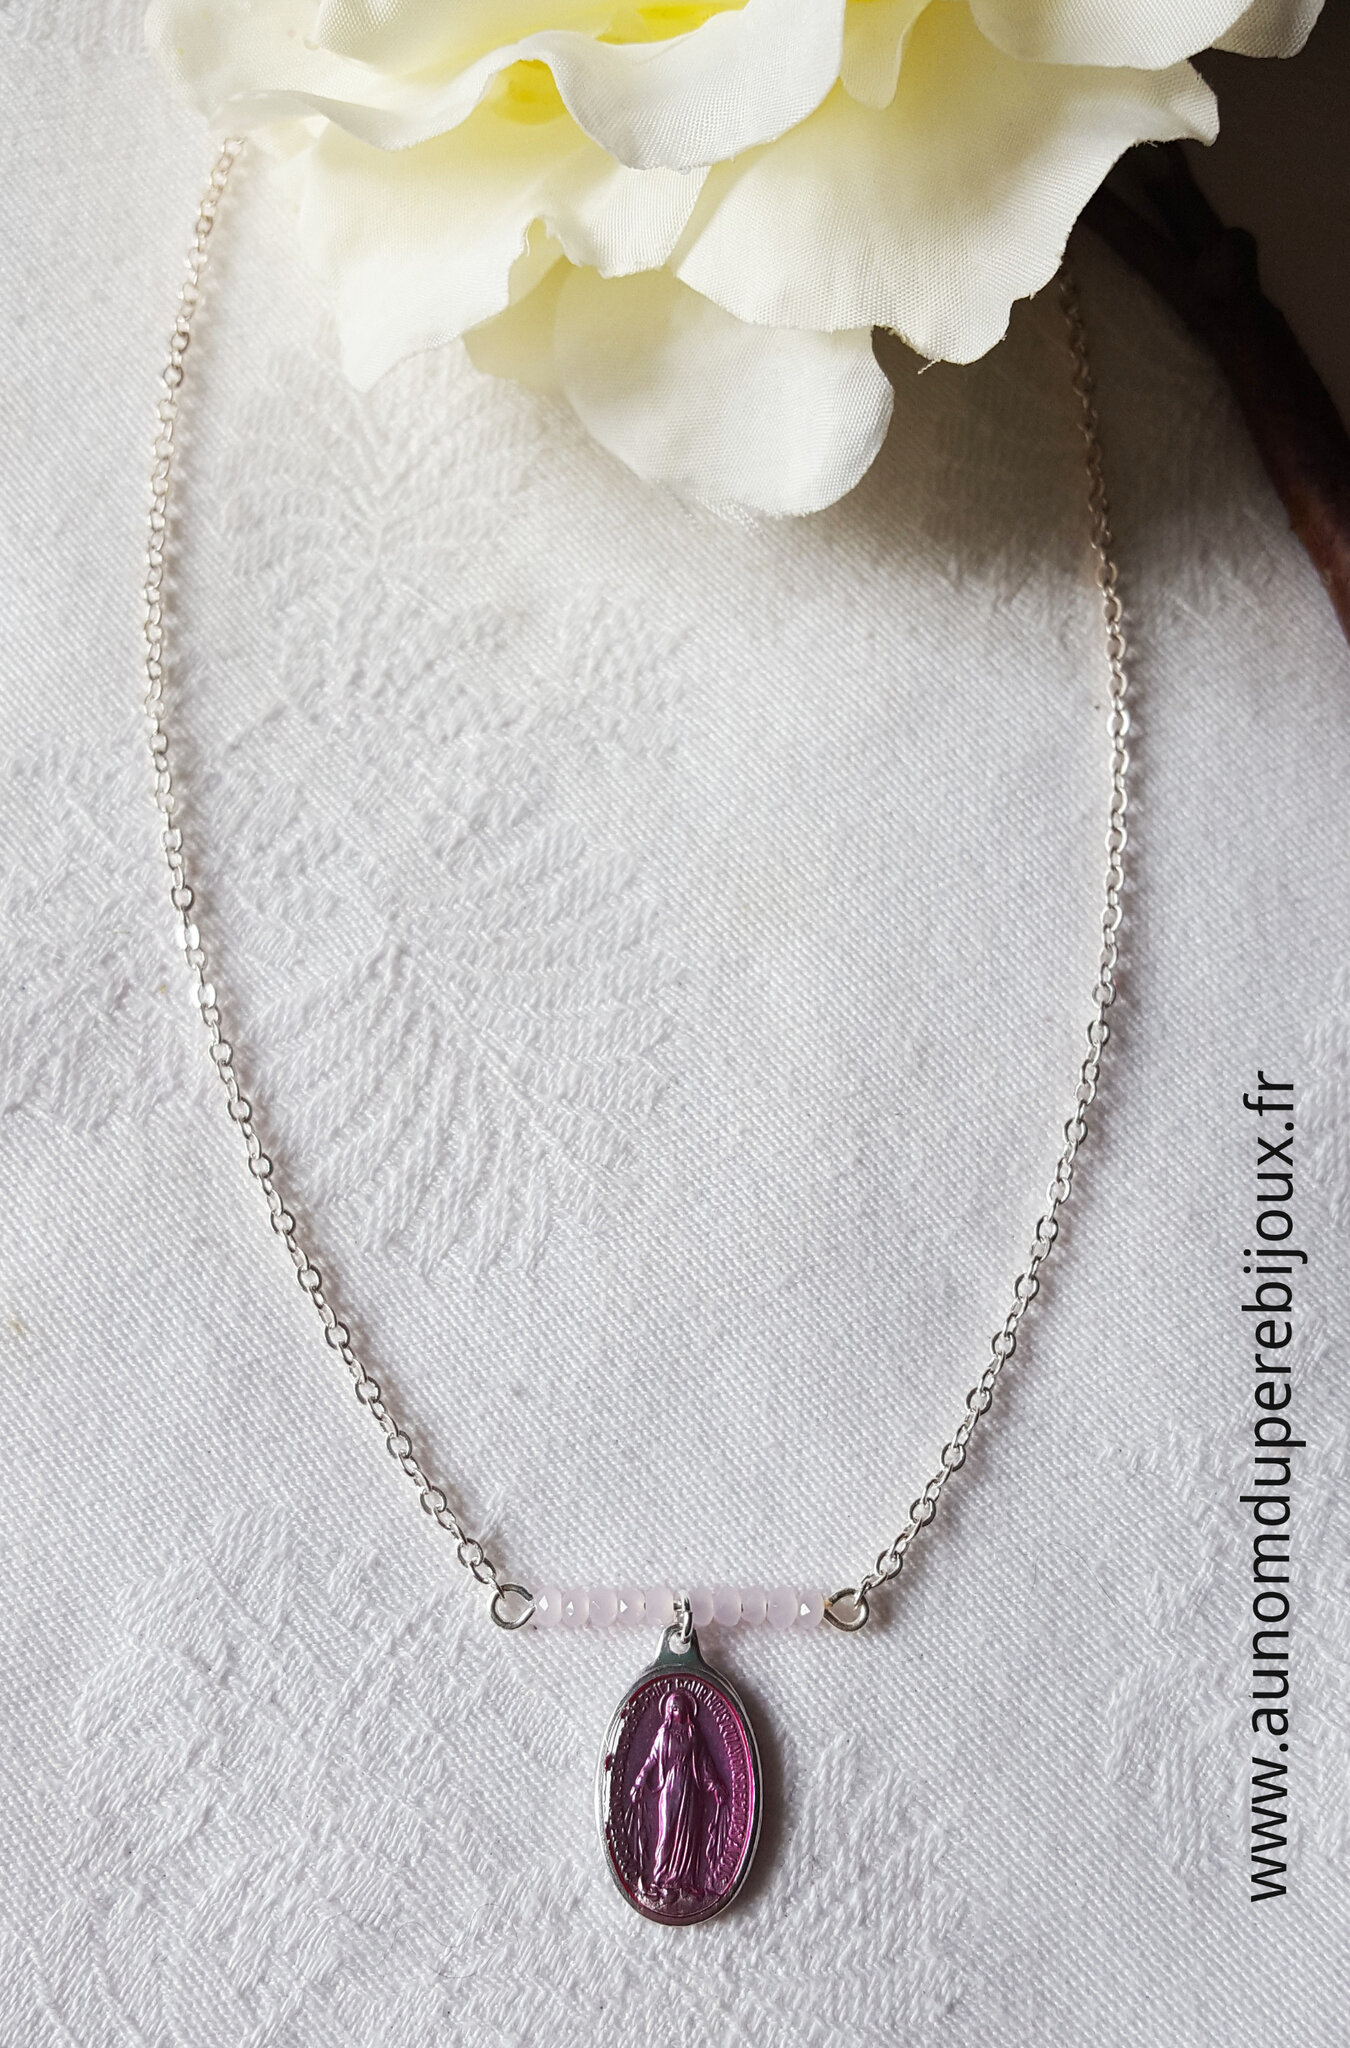 Collier Maria (rose clair) - 15 €